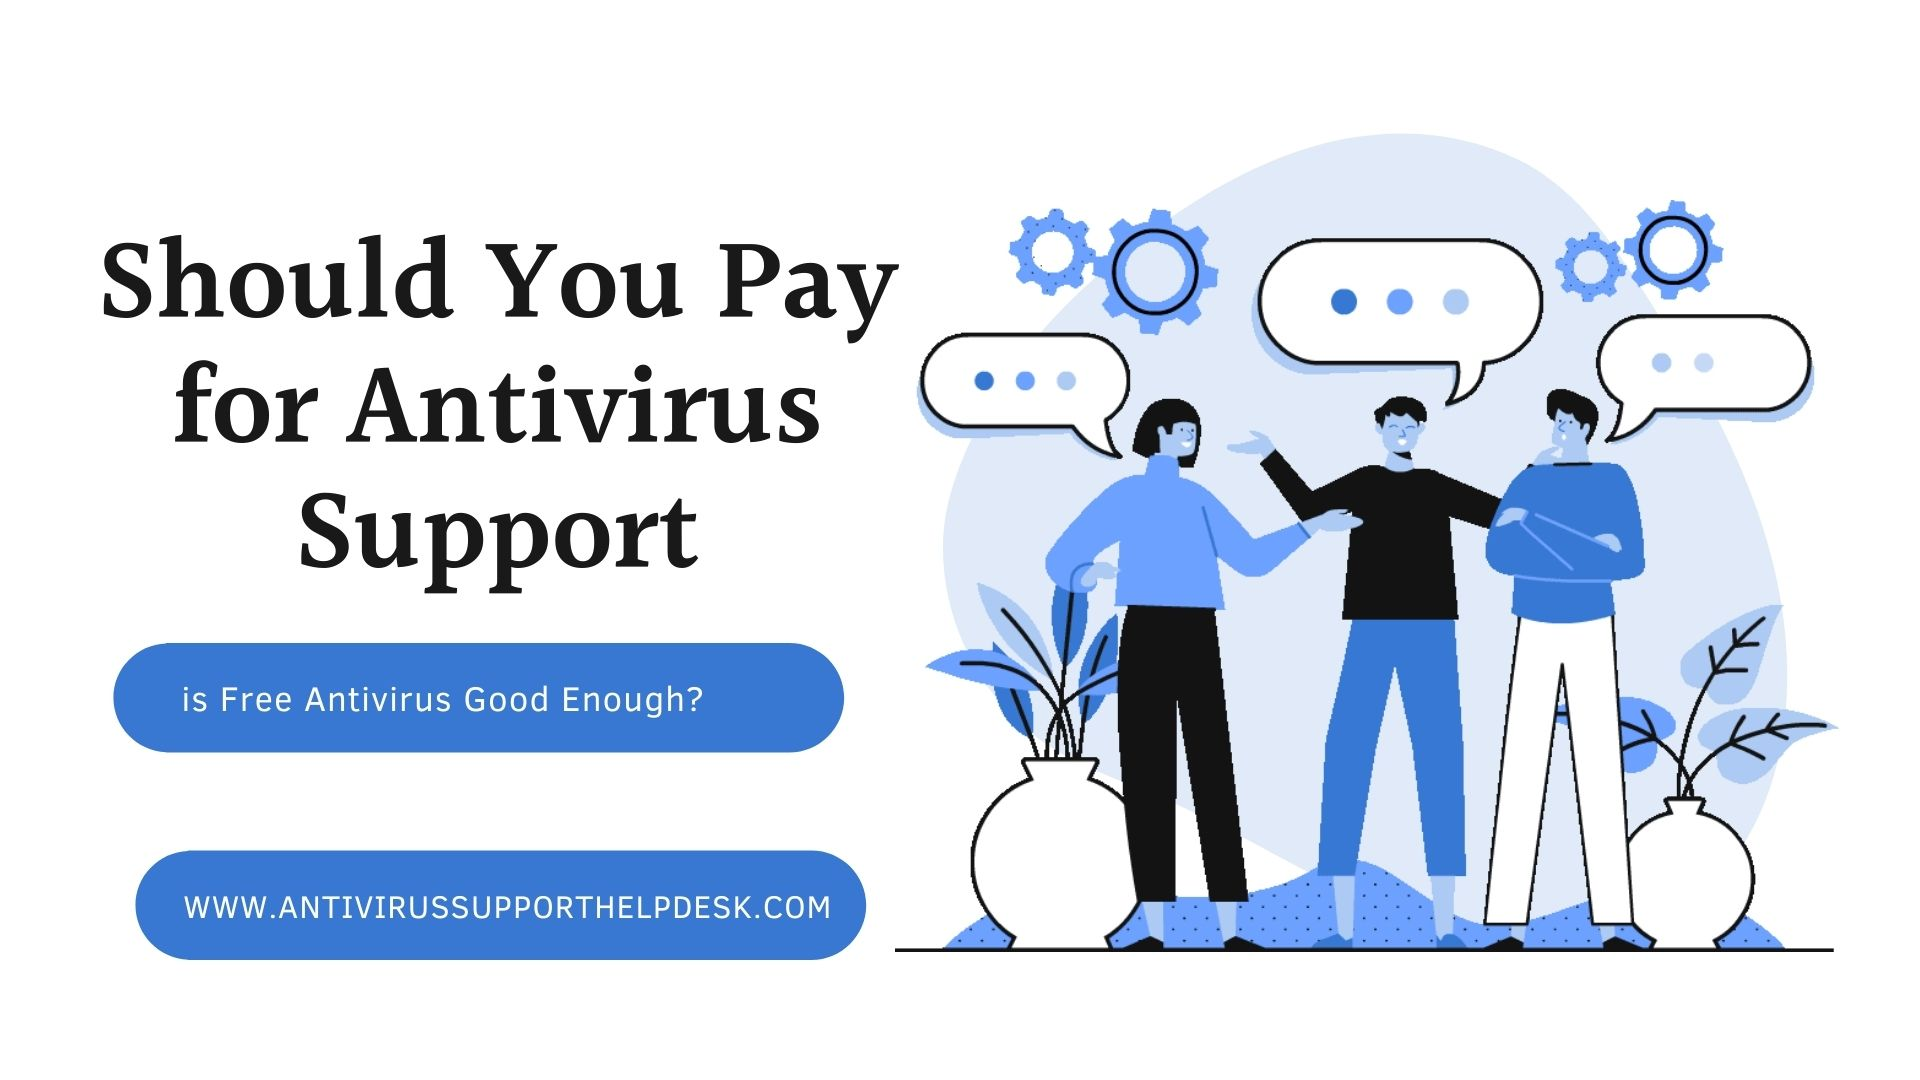 Should You Pay for Antivirus Support or is Free Antivirus Good Enough?